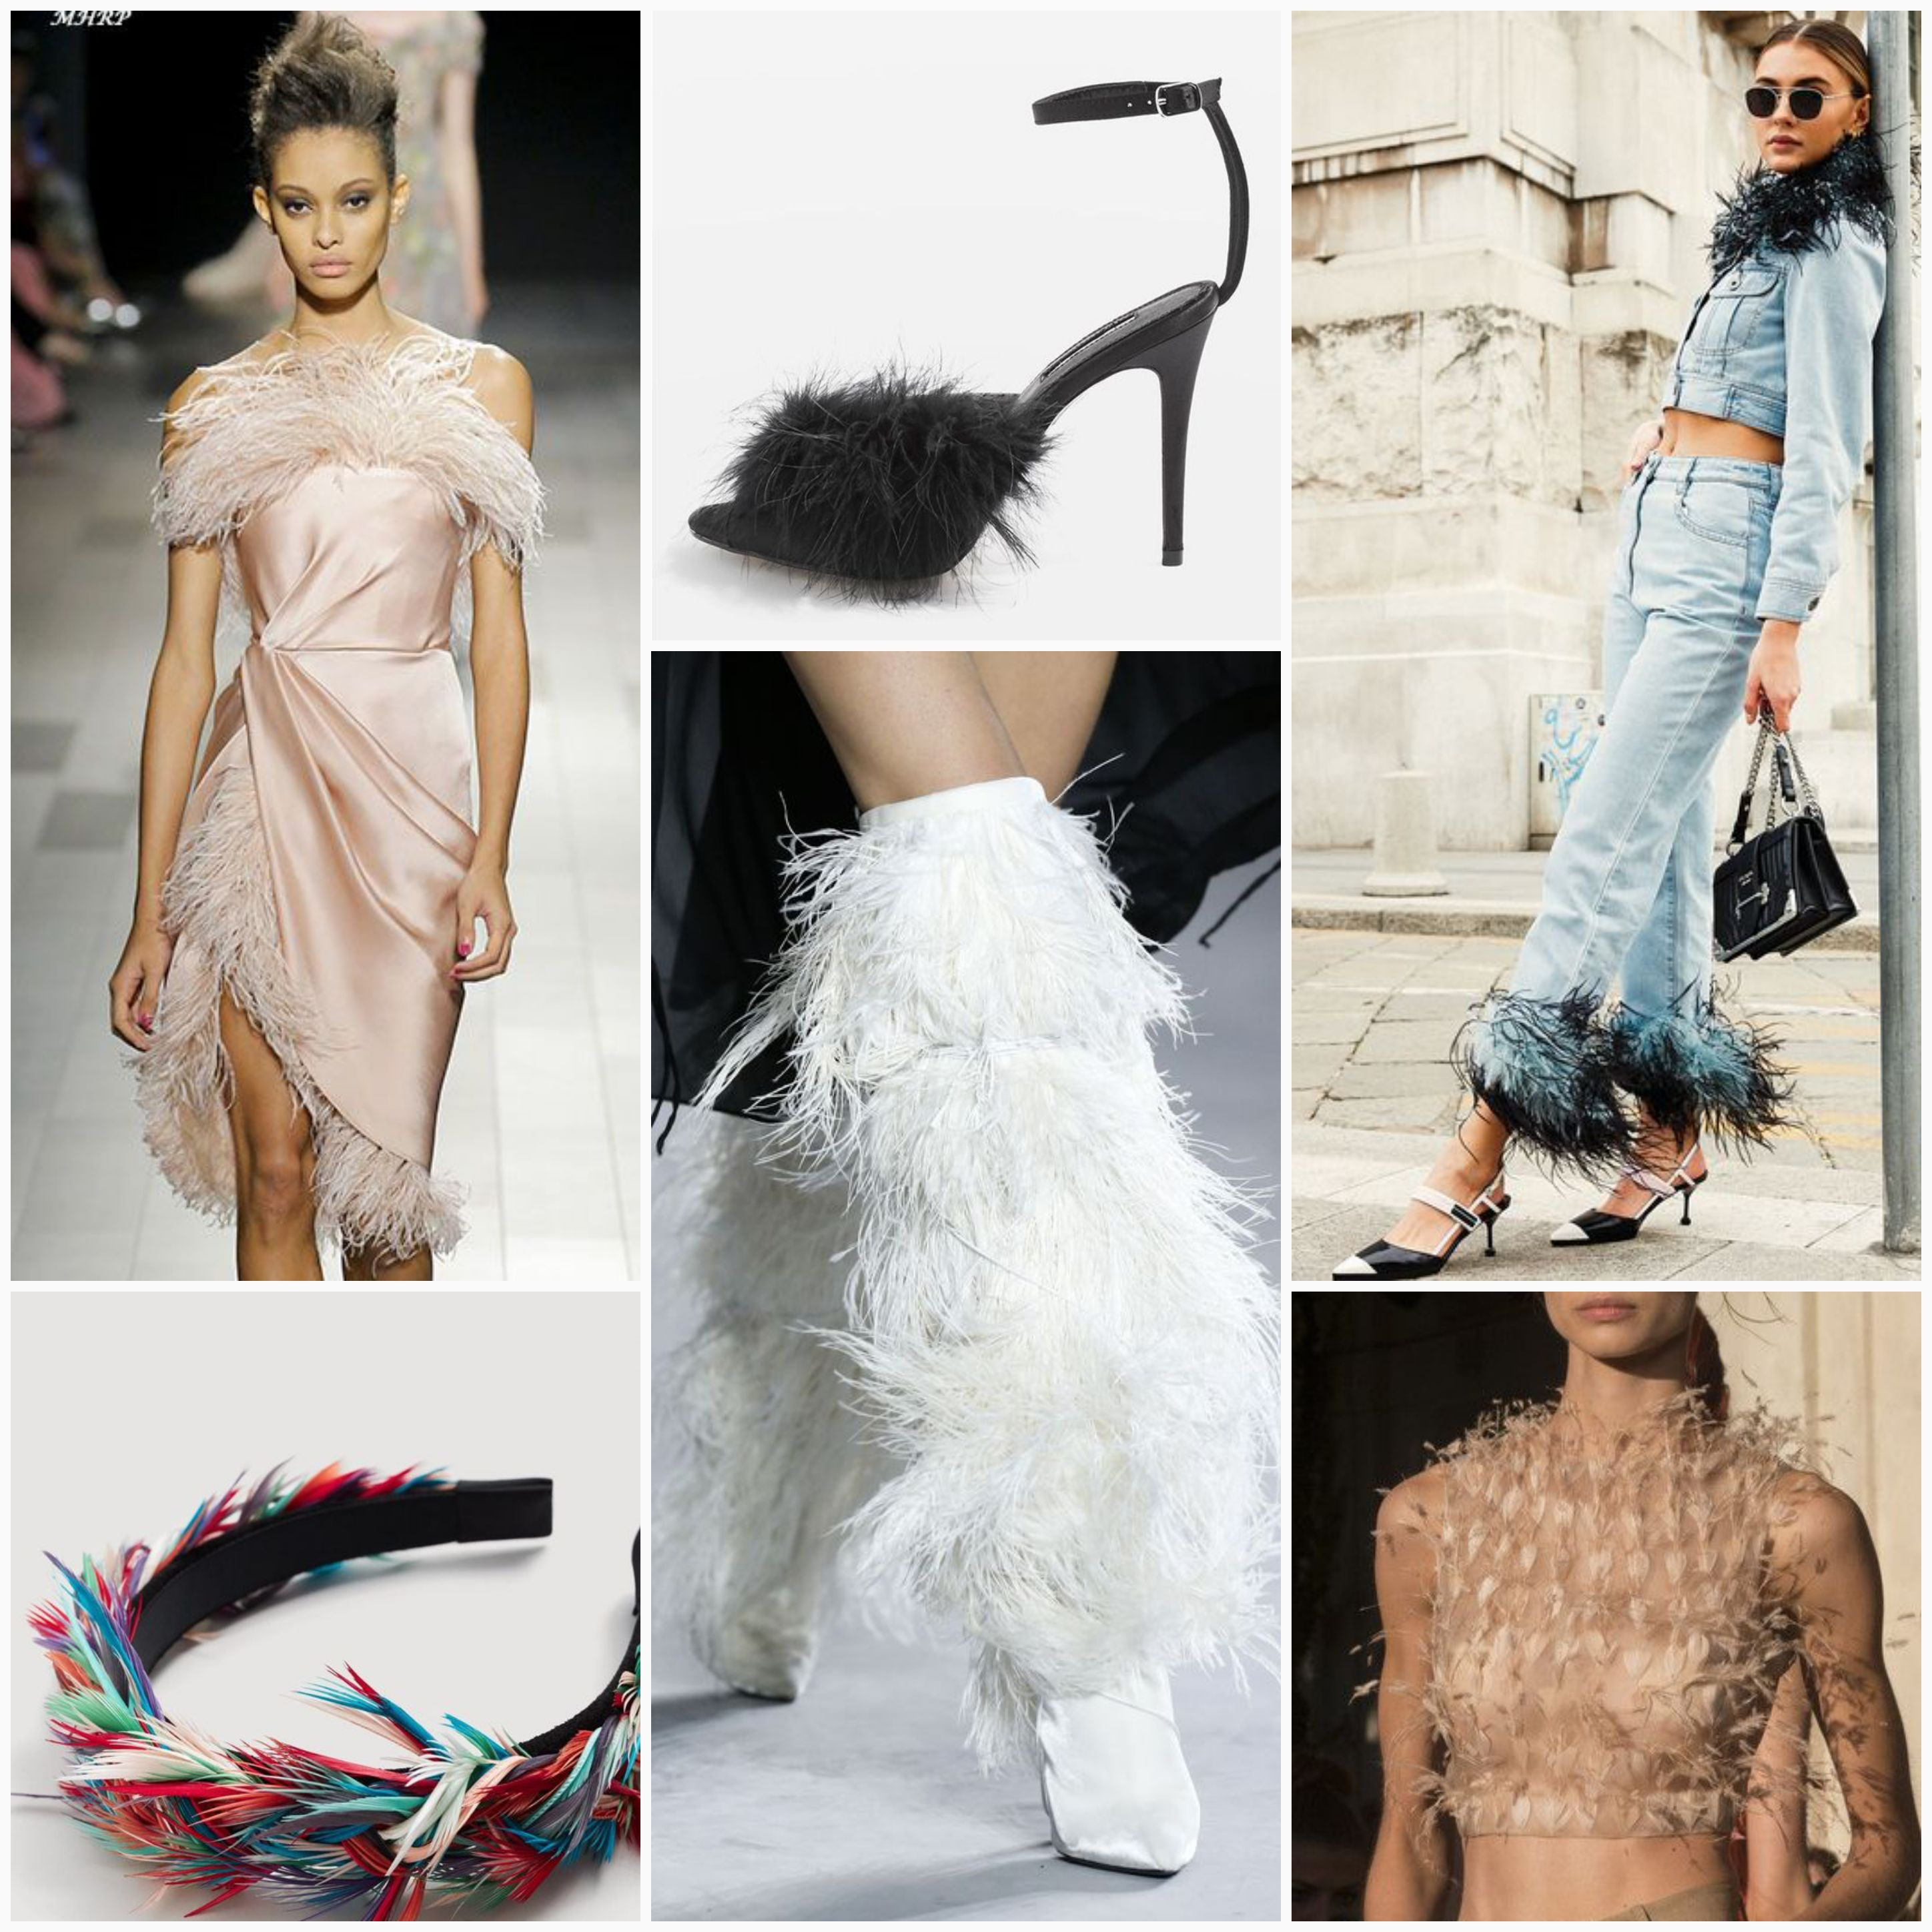 spring/summer trend fashion feathers outfit inspiration